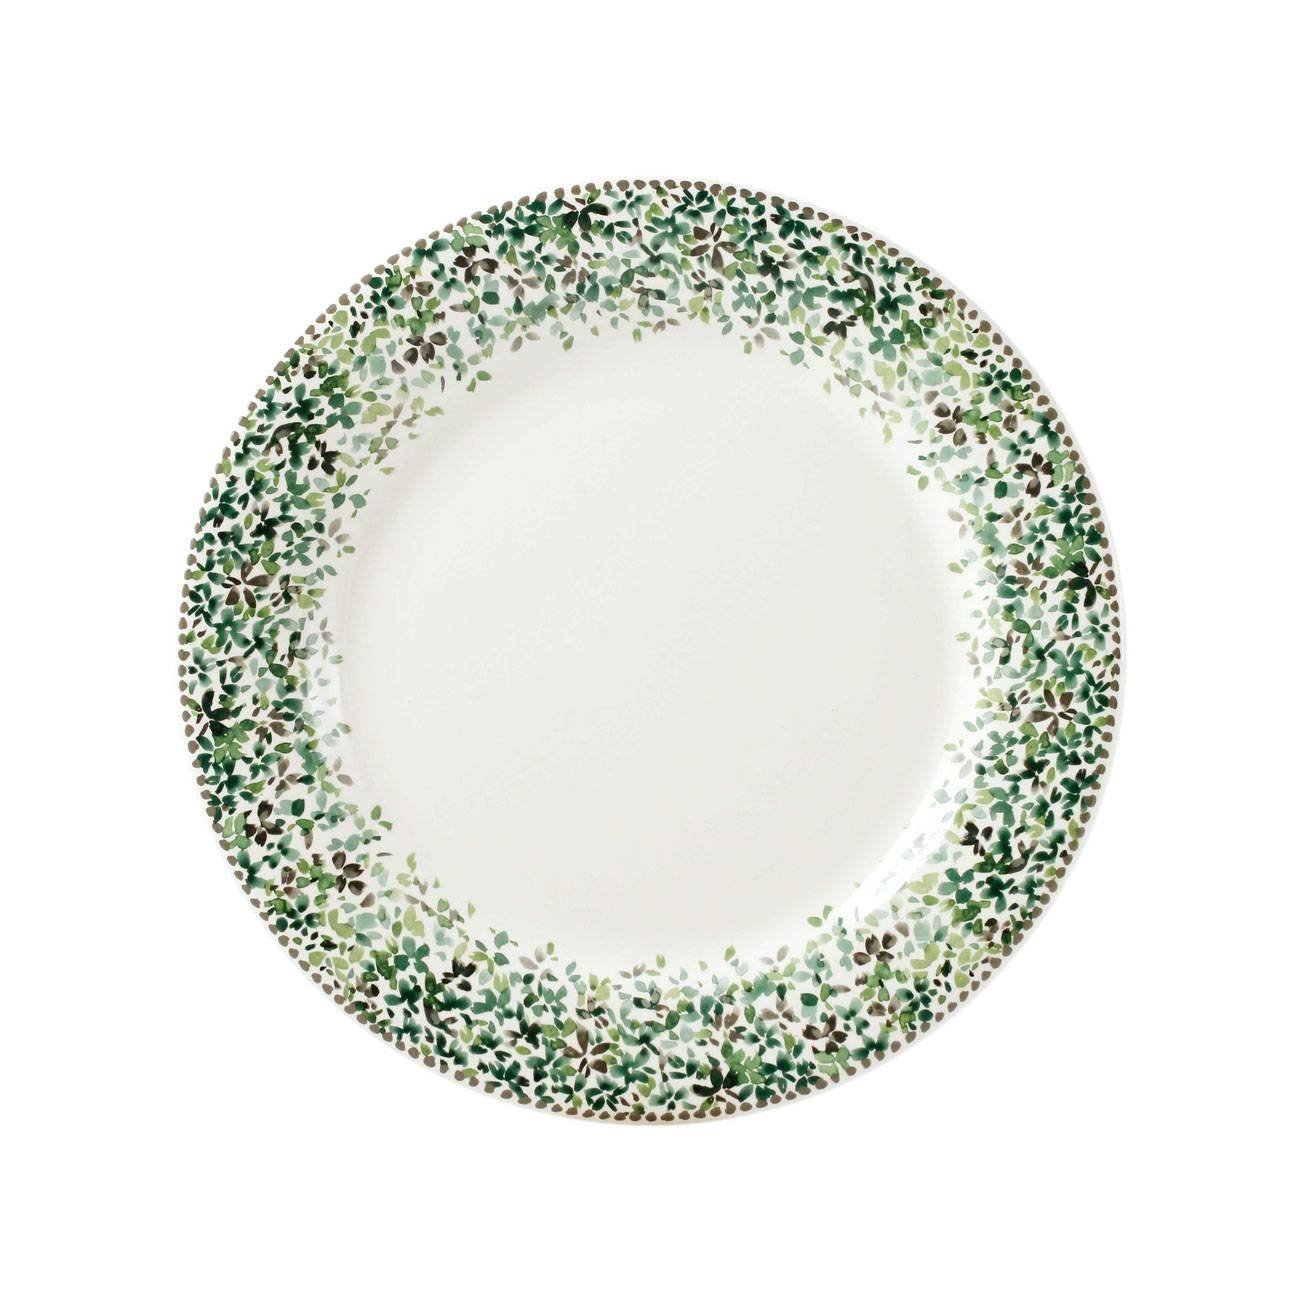 Gien Songe Canape Plates, Set of 4